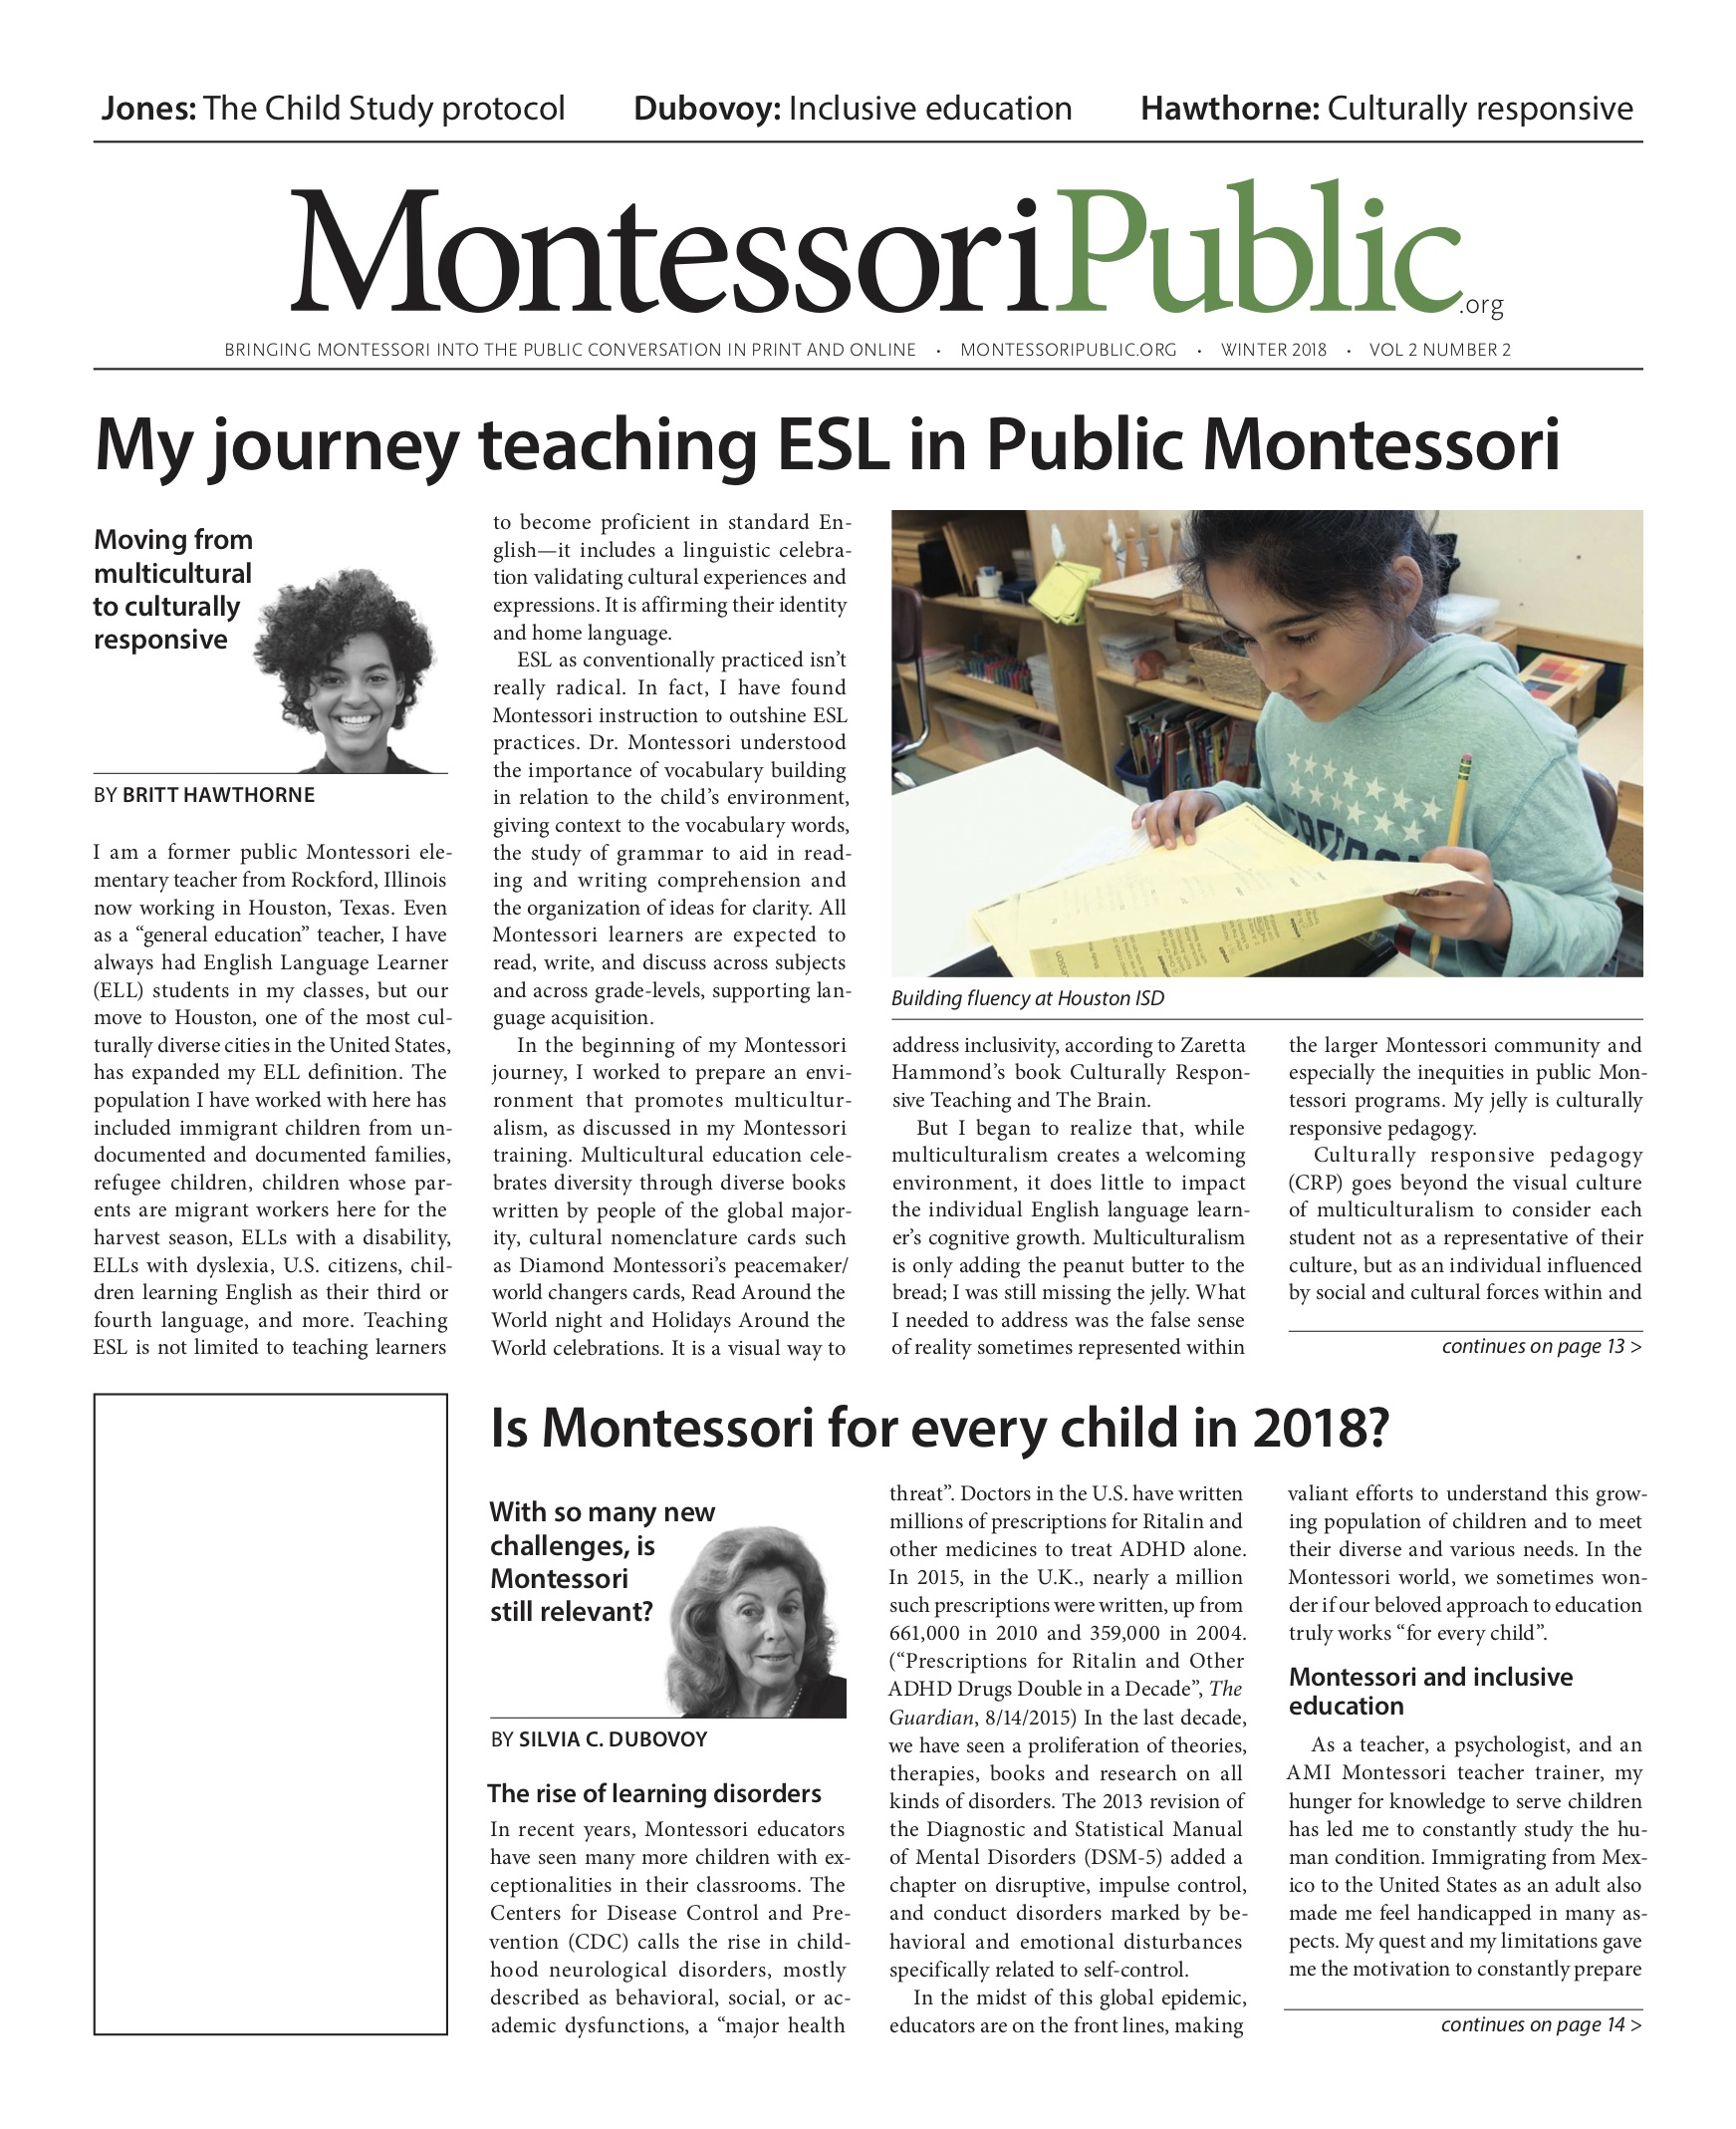 MontessoriPublic—Print Edition Volume 2 #2: SPED and ELL